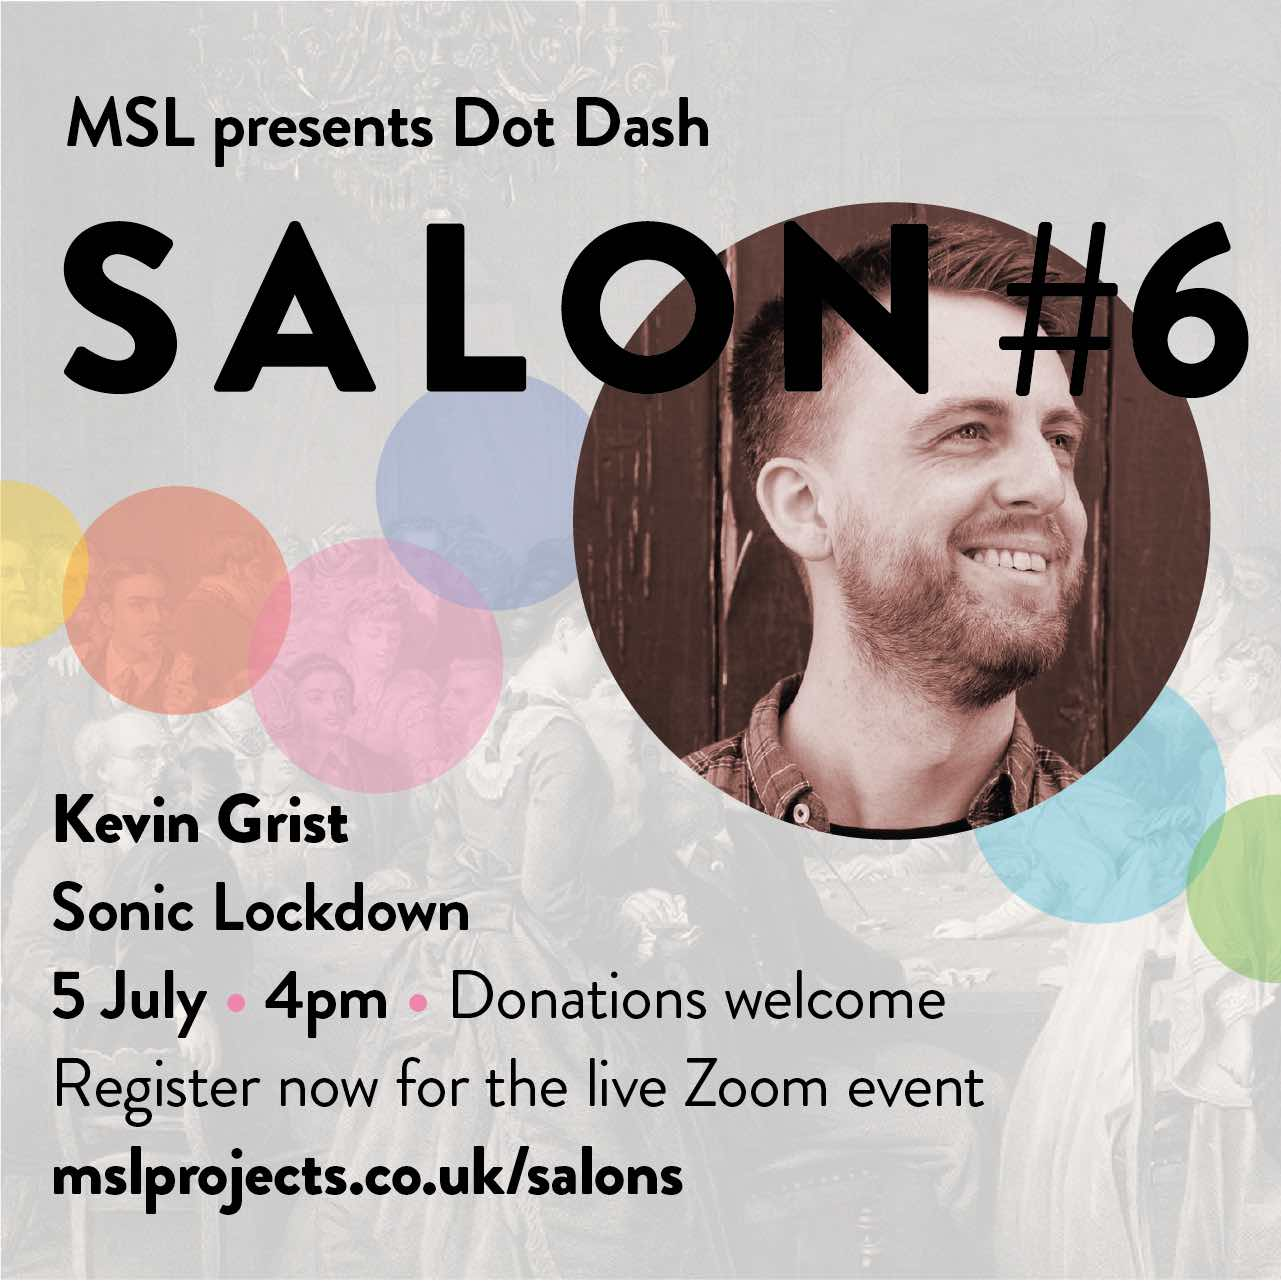 Salon 6 Sonic Lockdown Sunday 5 July 4pm for MSL Projects